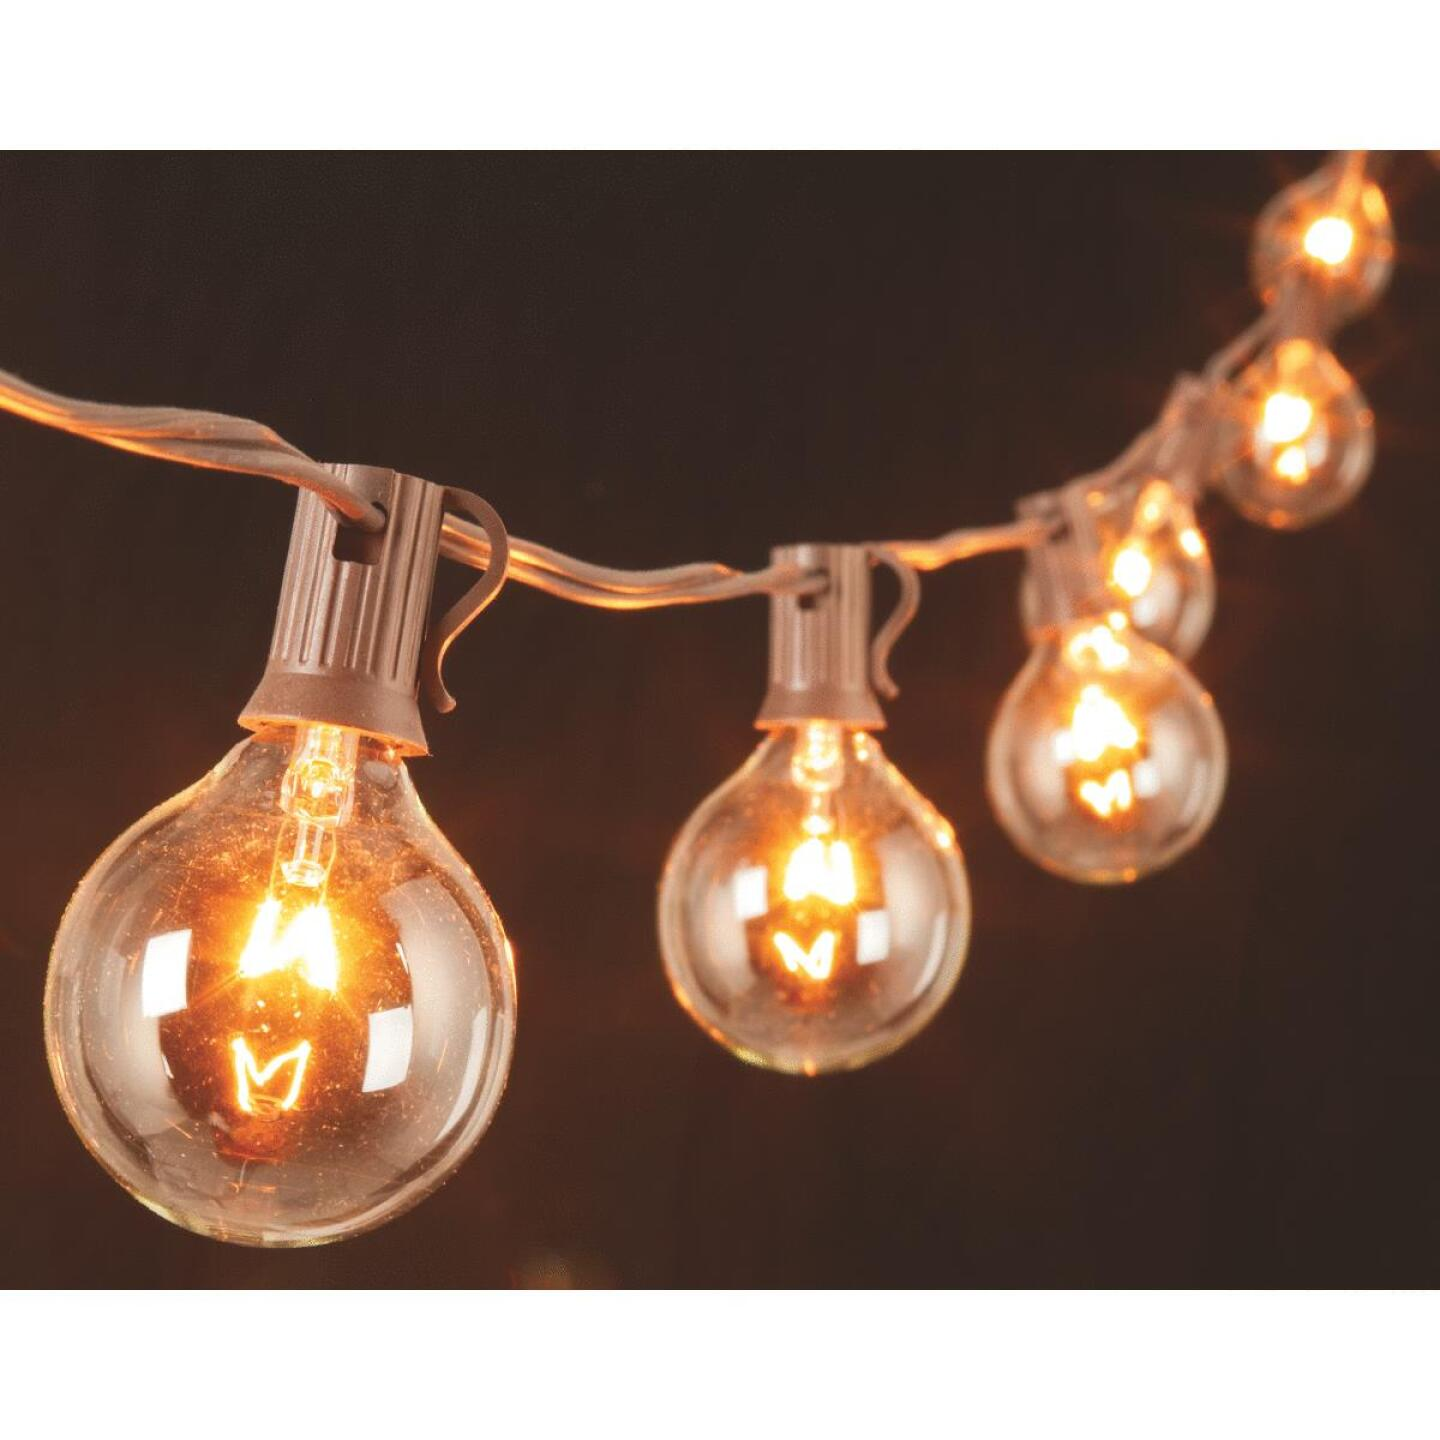 Gerson 10 Ft. 10-Light Clear Globe String Lights Image 1